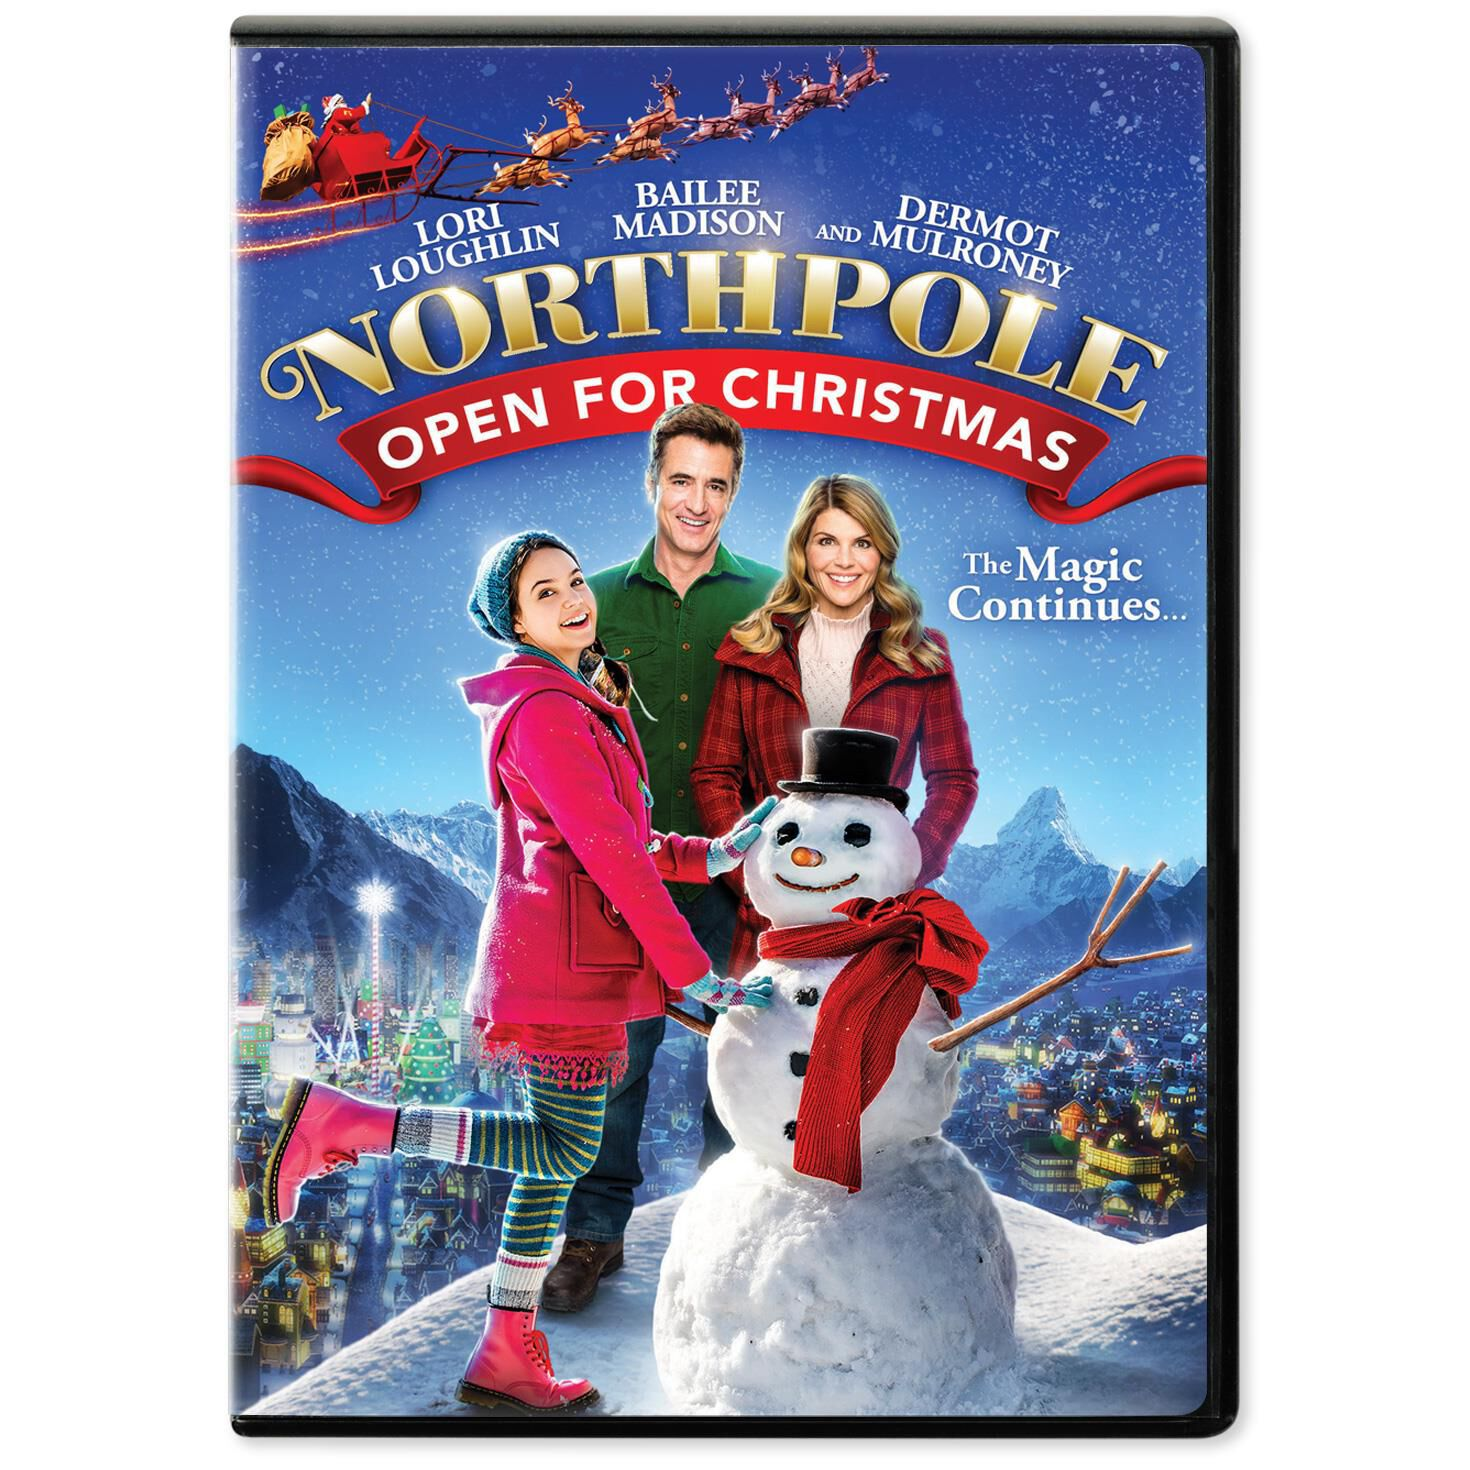 Northpole: Open for Christmas DVD - Hallmark Channel - Hallmark